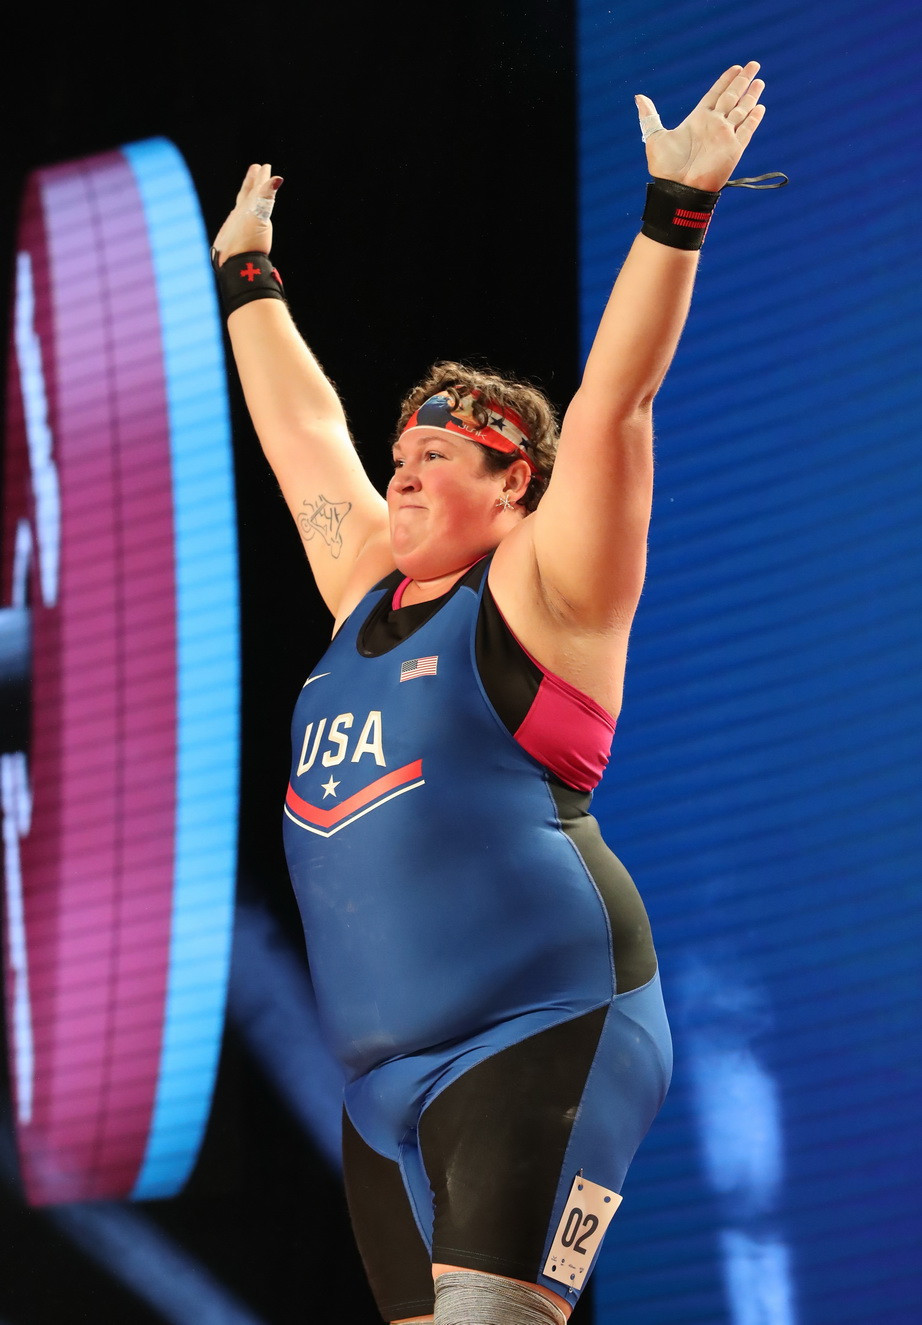 Sarah Robles today became the United States' first female weightlifting world champion in 23 years ©IWF